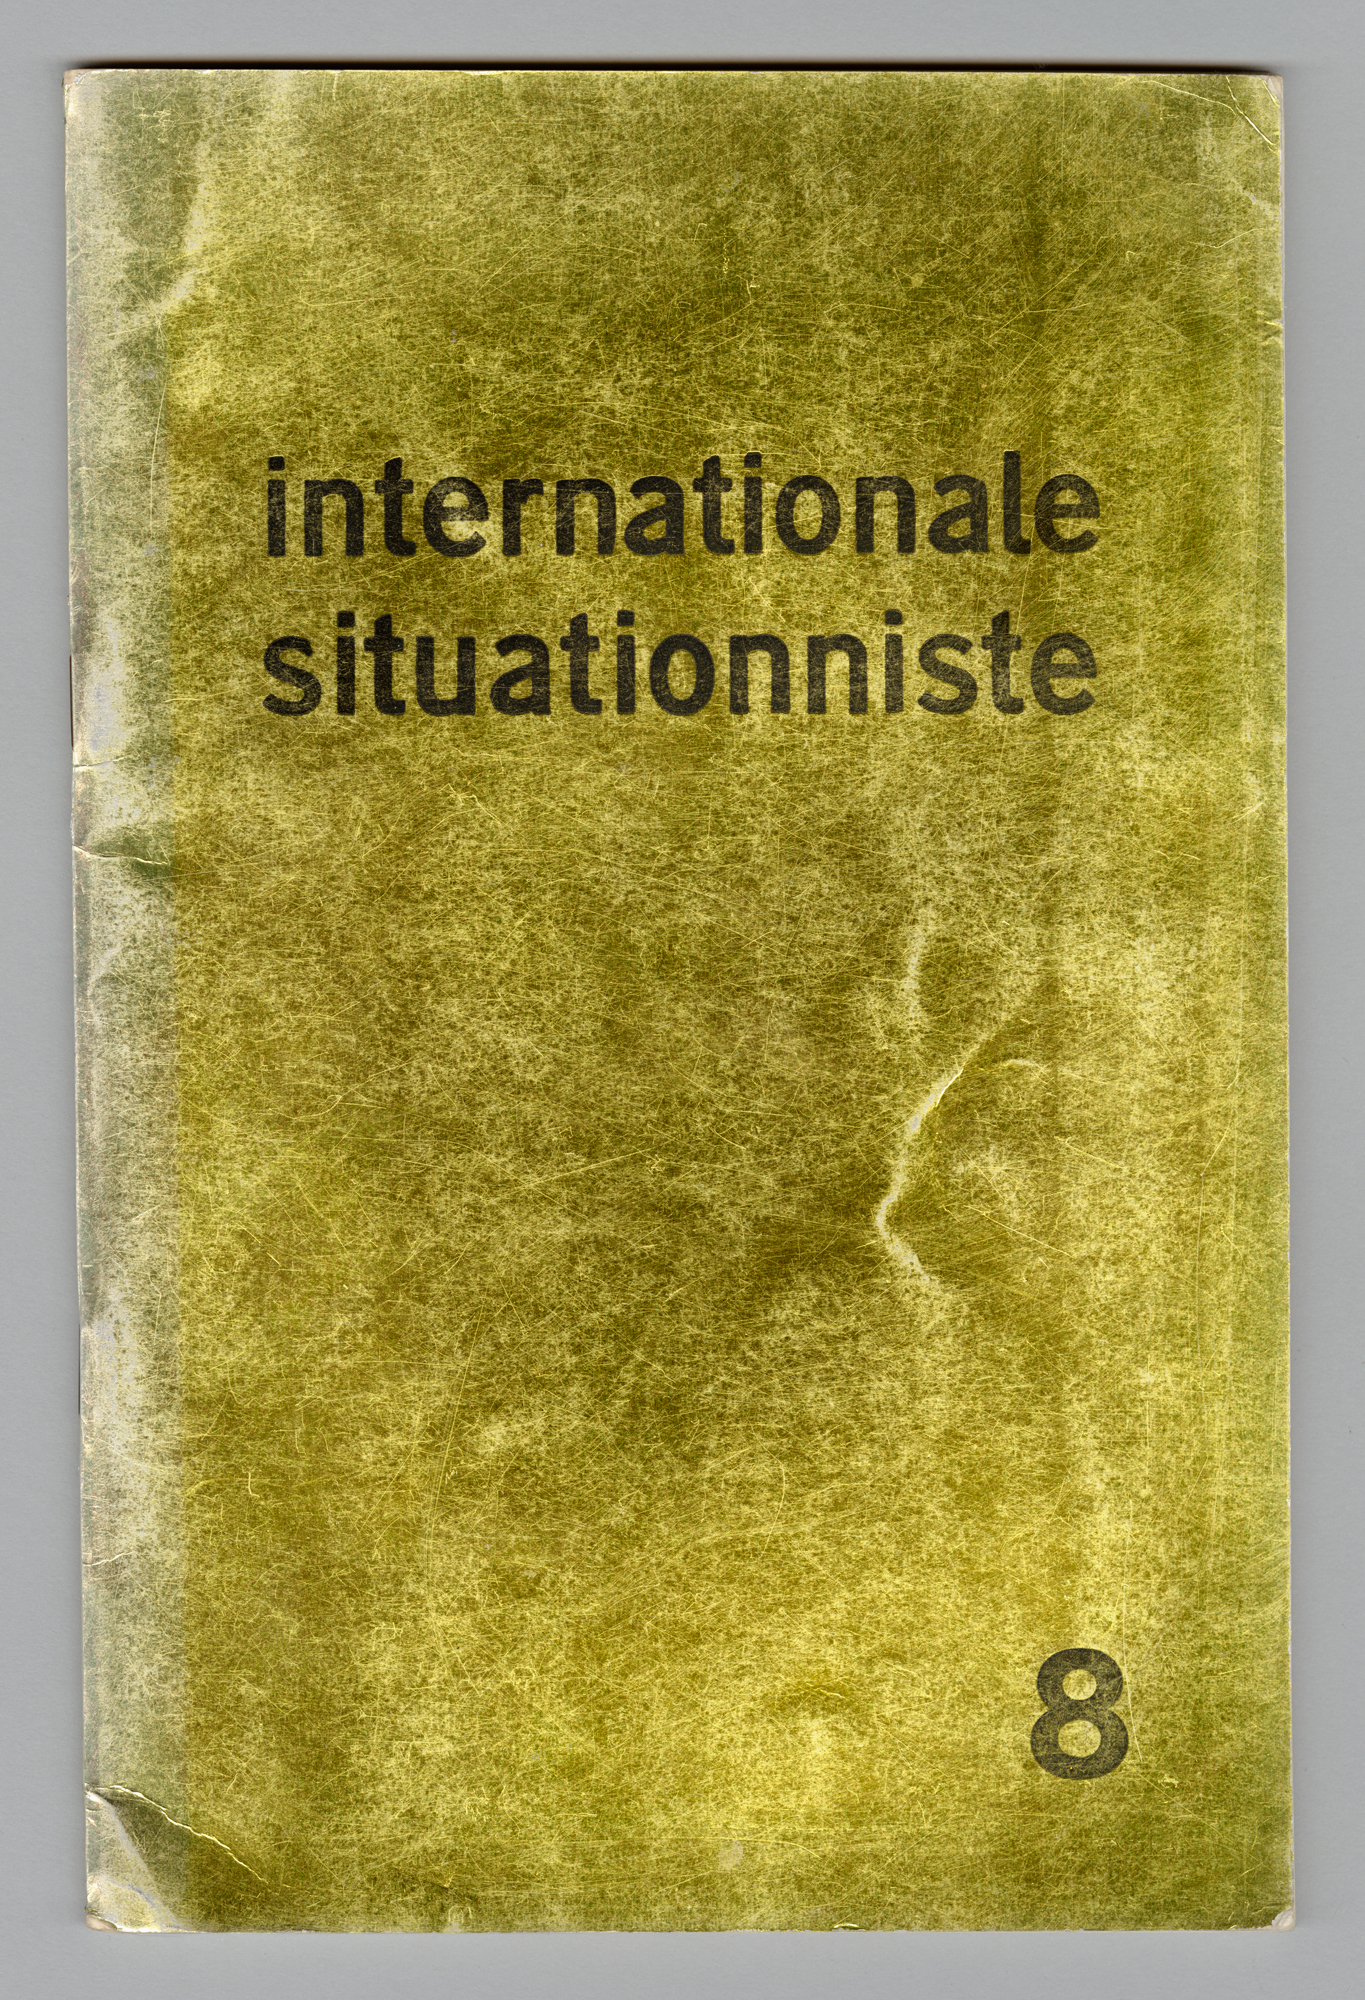 Internationale Situationiste No. 8, Front Cover